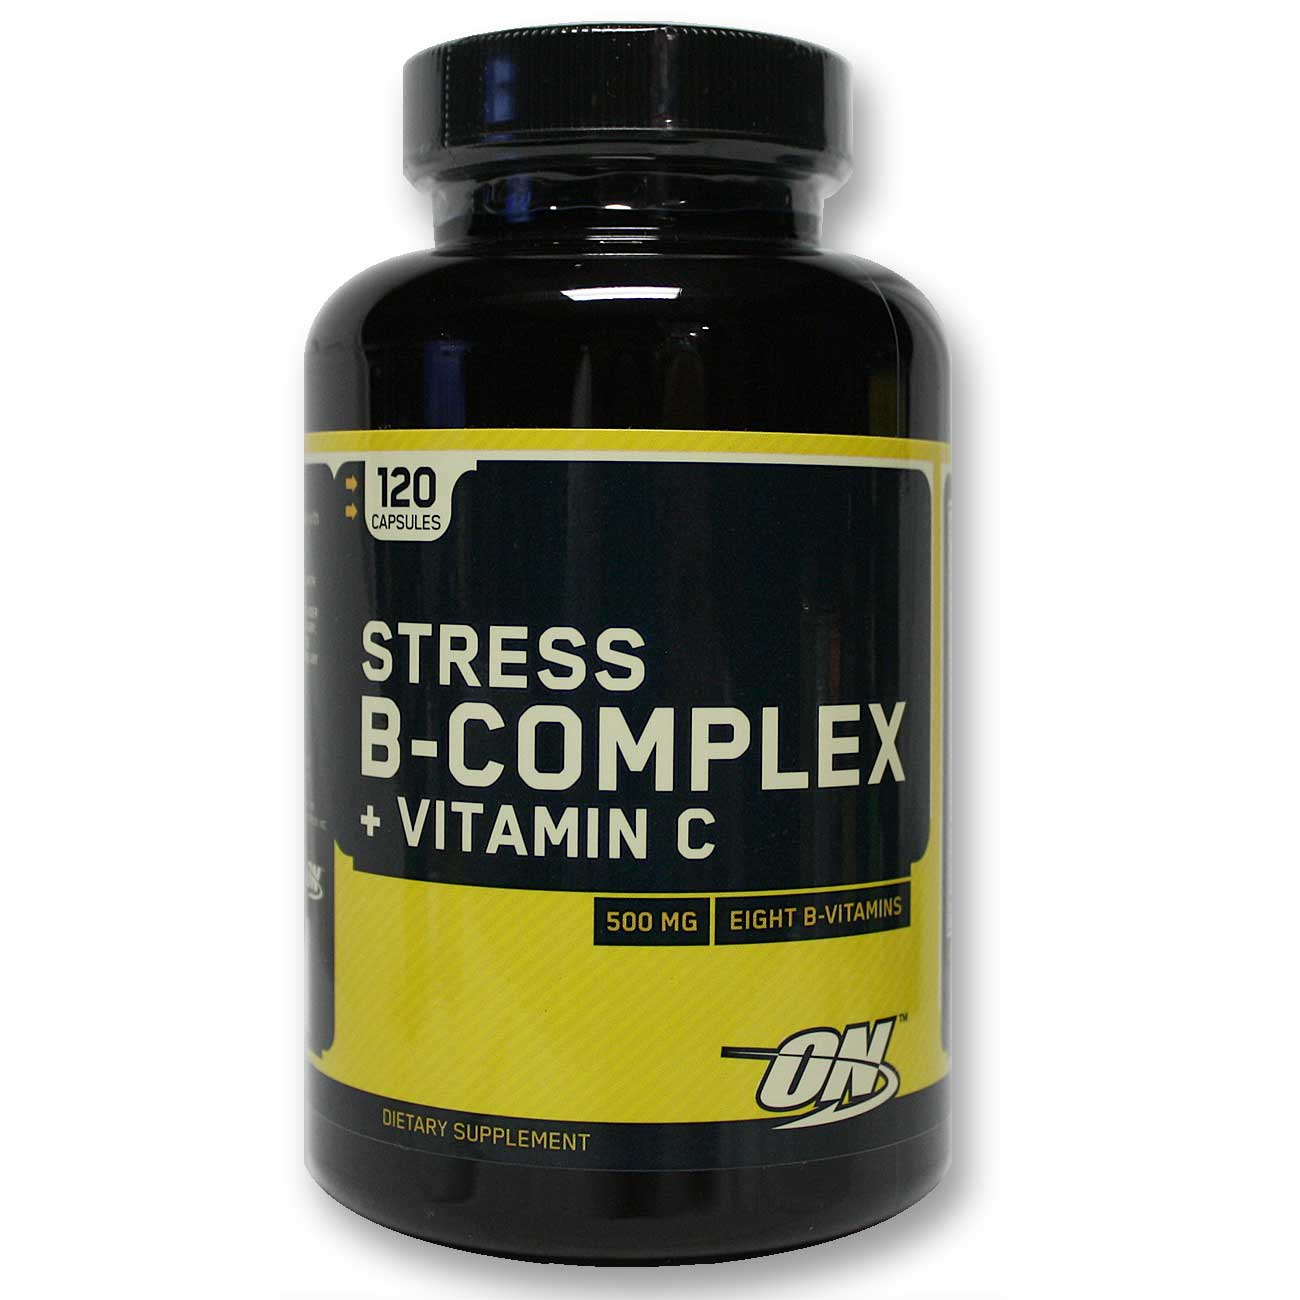 Vitamin b and stress